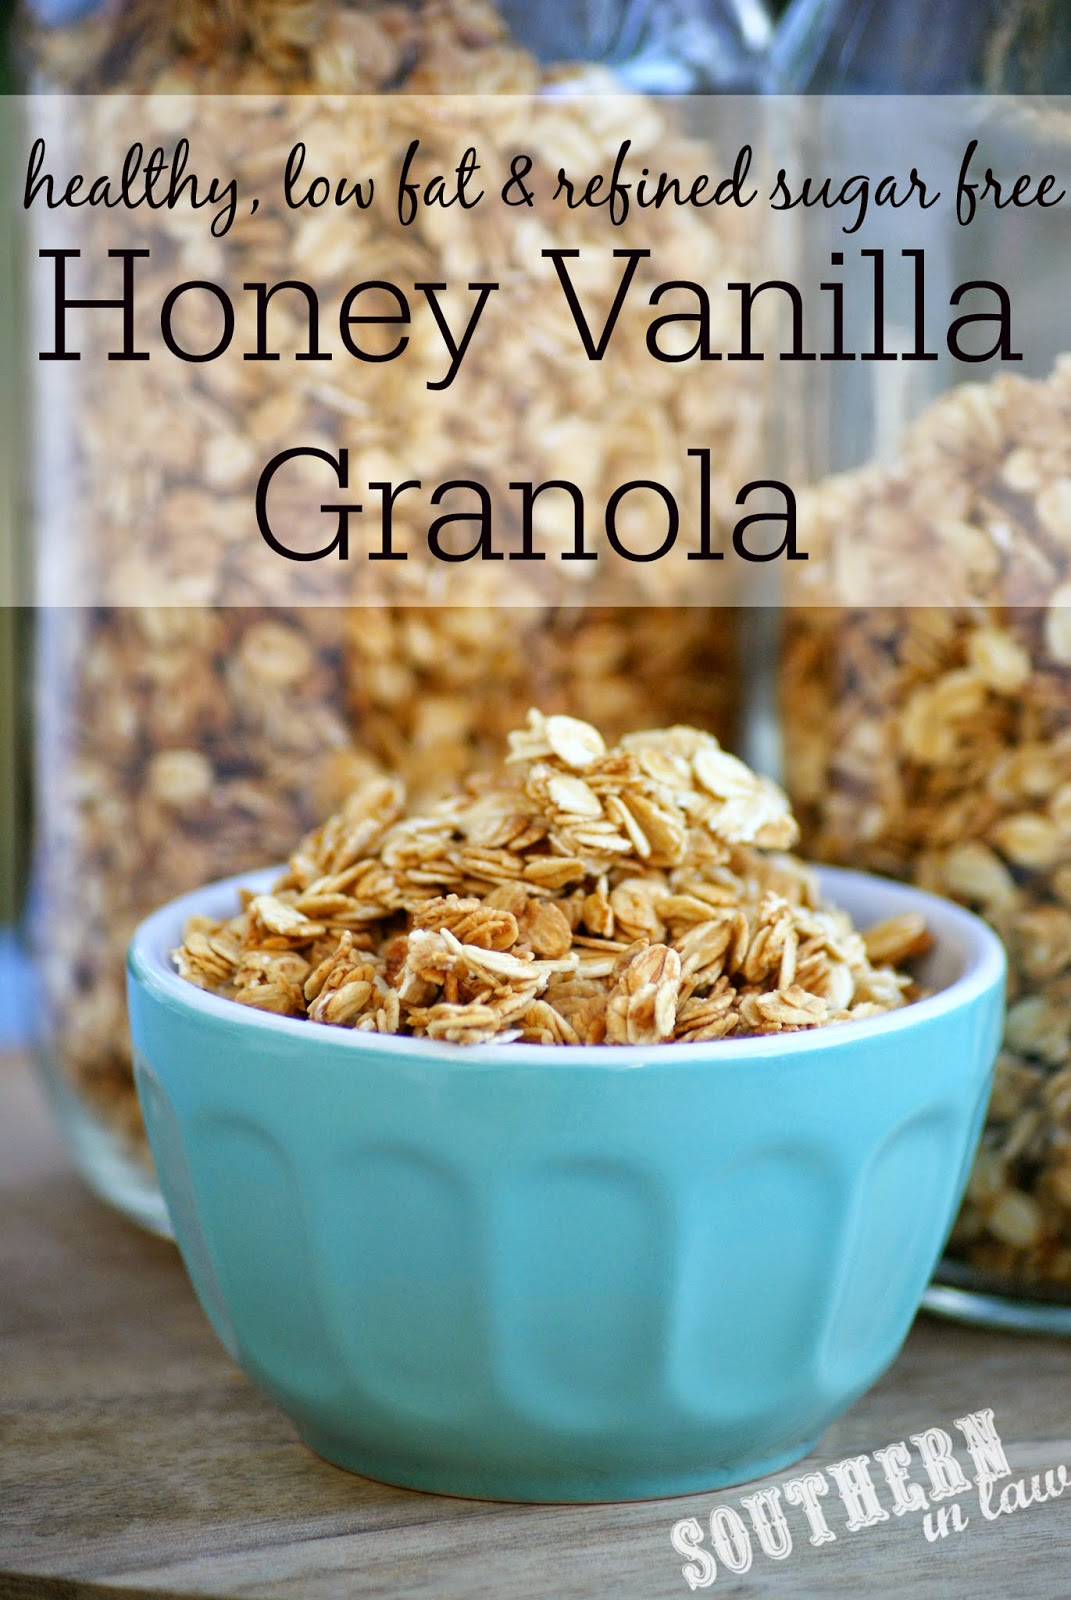 Healthy Homemade Christmas Gifts: Southern In Law: Recipe: Healthy Homemade Honey Vanilla